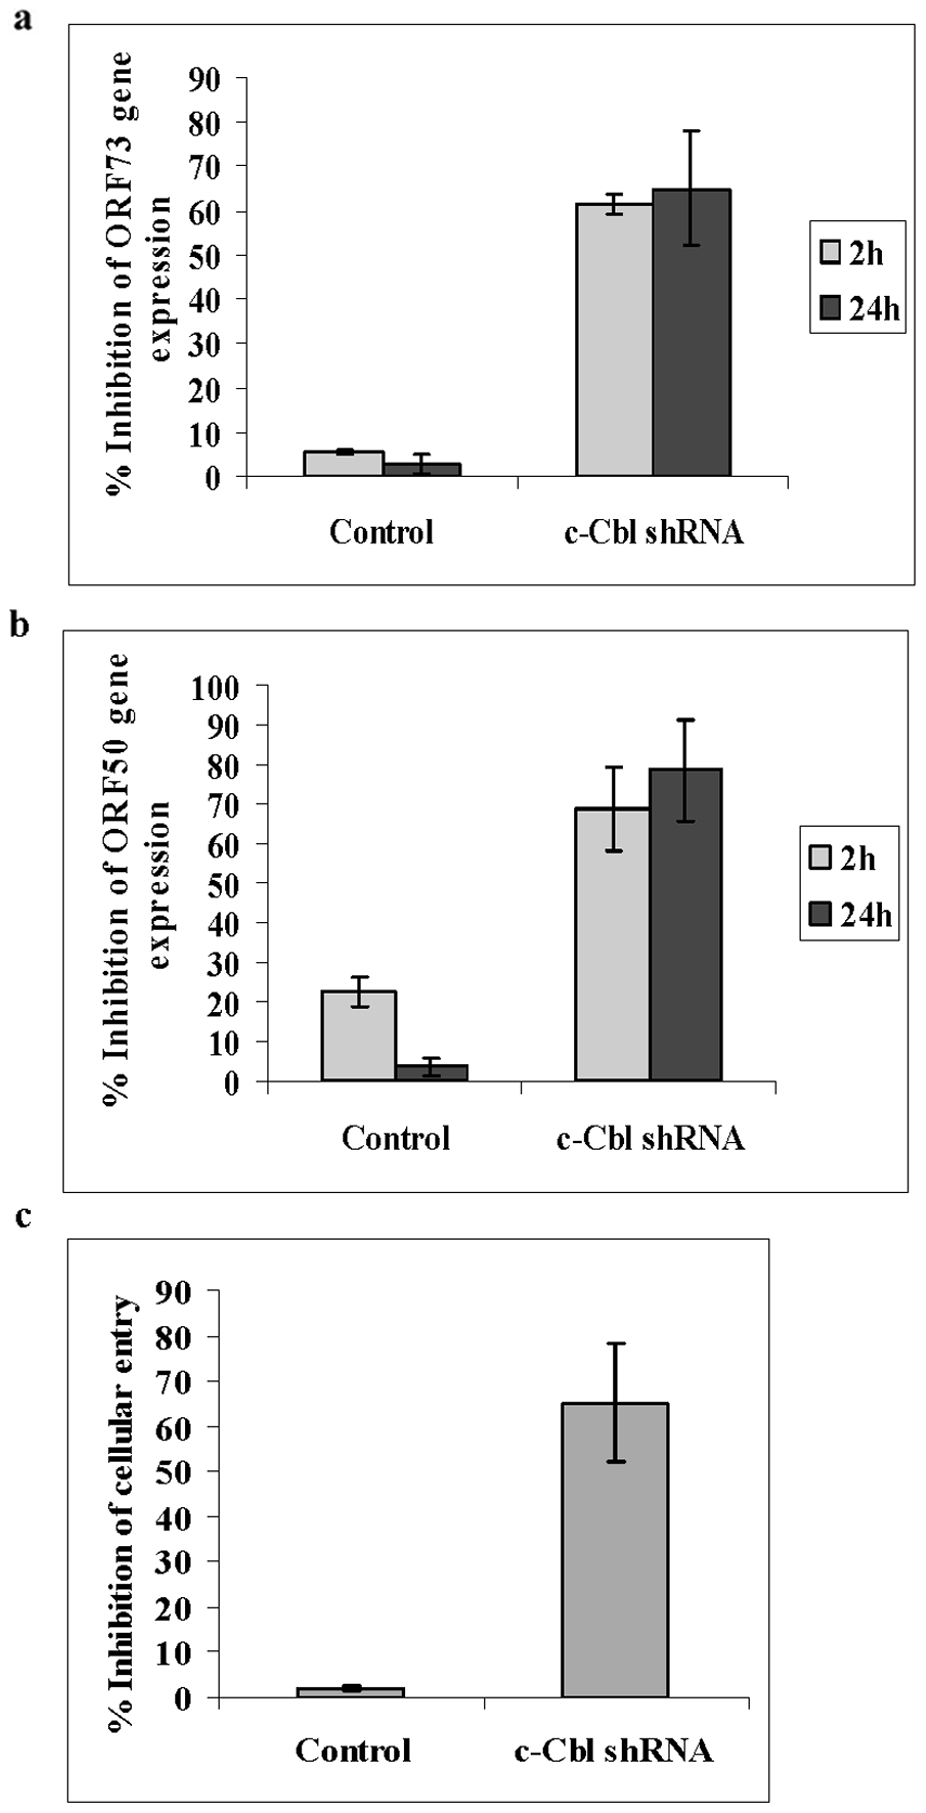 c-Cbl shRNA inhibits KSHV entry and infection.